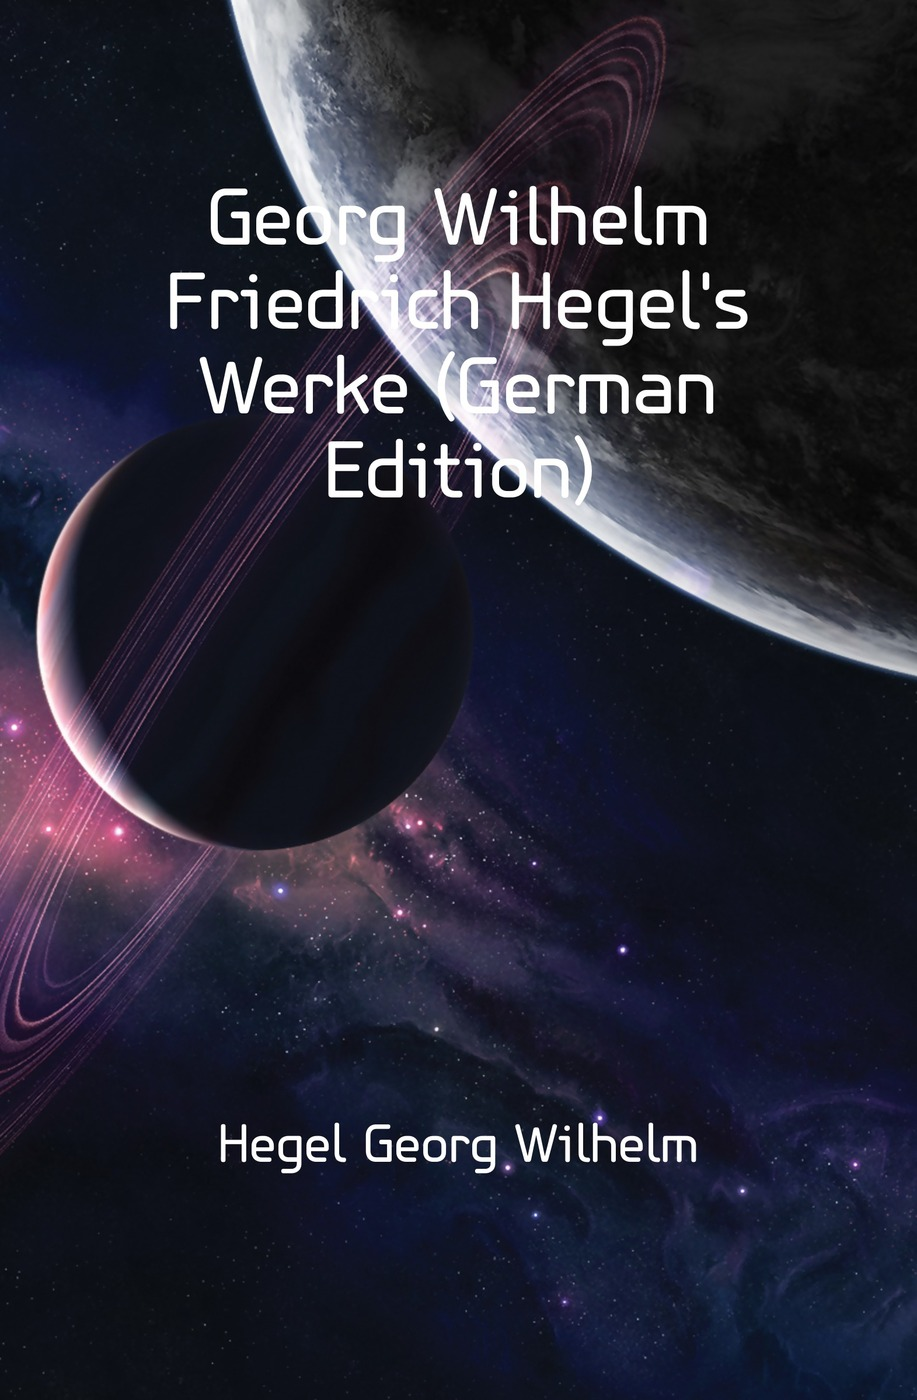 лучшая цена Hegel Georg Wilhelm Georg Wilhelm Friedrich Hegel's Werke (German Edition)